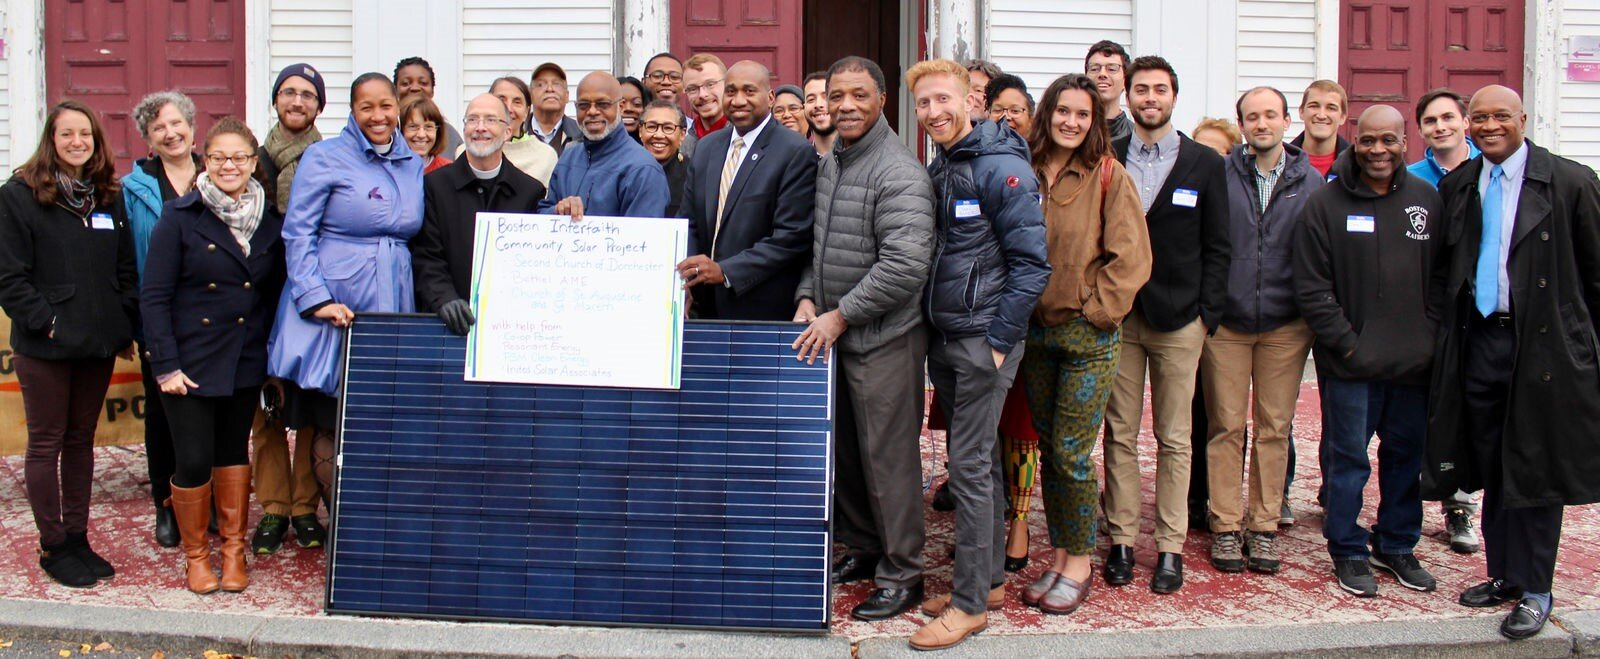 Community members and stakeholders gather at the Second Church in Dorchester to celebrate the Interfaith Solar Project. Through the project, Boston Impact Initiative supported solar installations on the rooftops of three Boston churches in majority non-white neighborhoods.